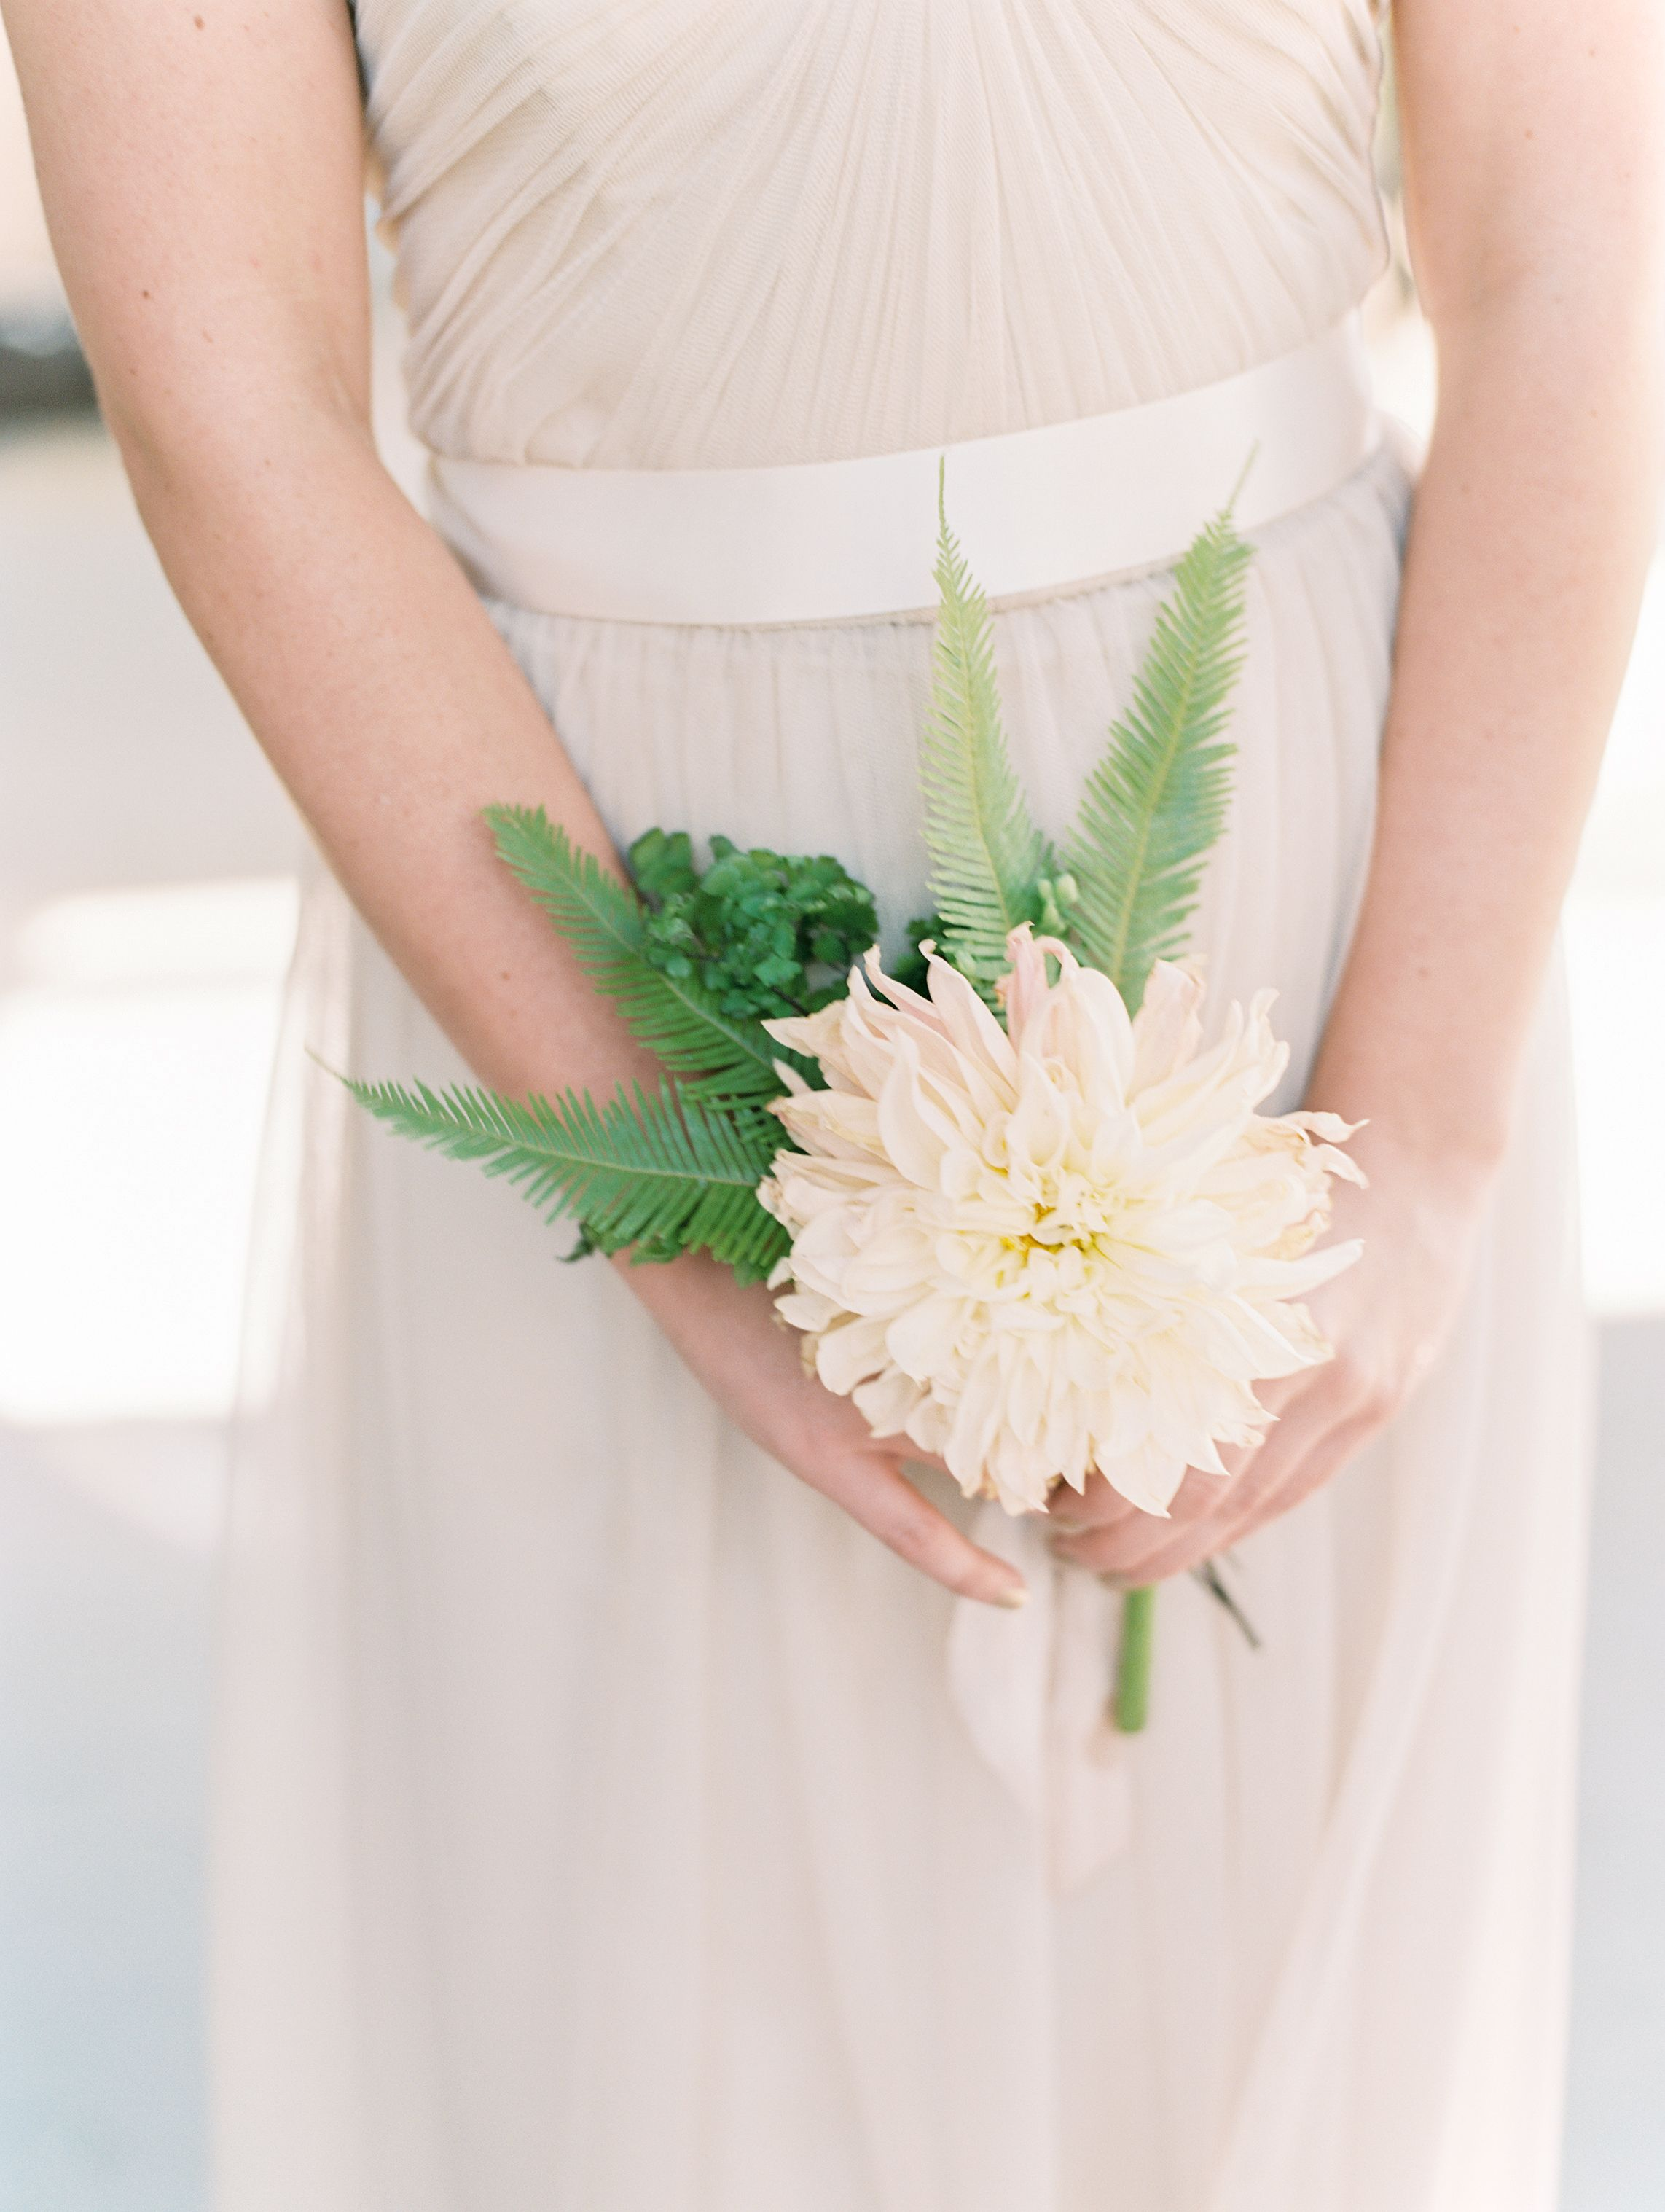 Bridesmaid with single flower bouquet flowerarrangement ideas bridesmaid with single flower bouquet photography by httplisaodwyer izmirmasajfo